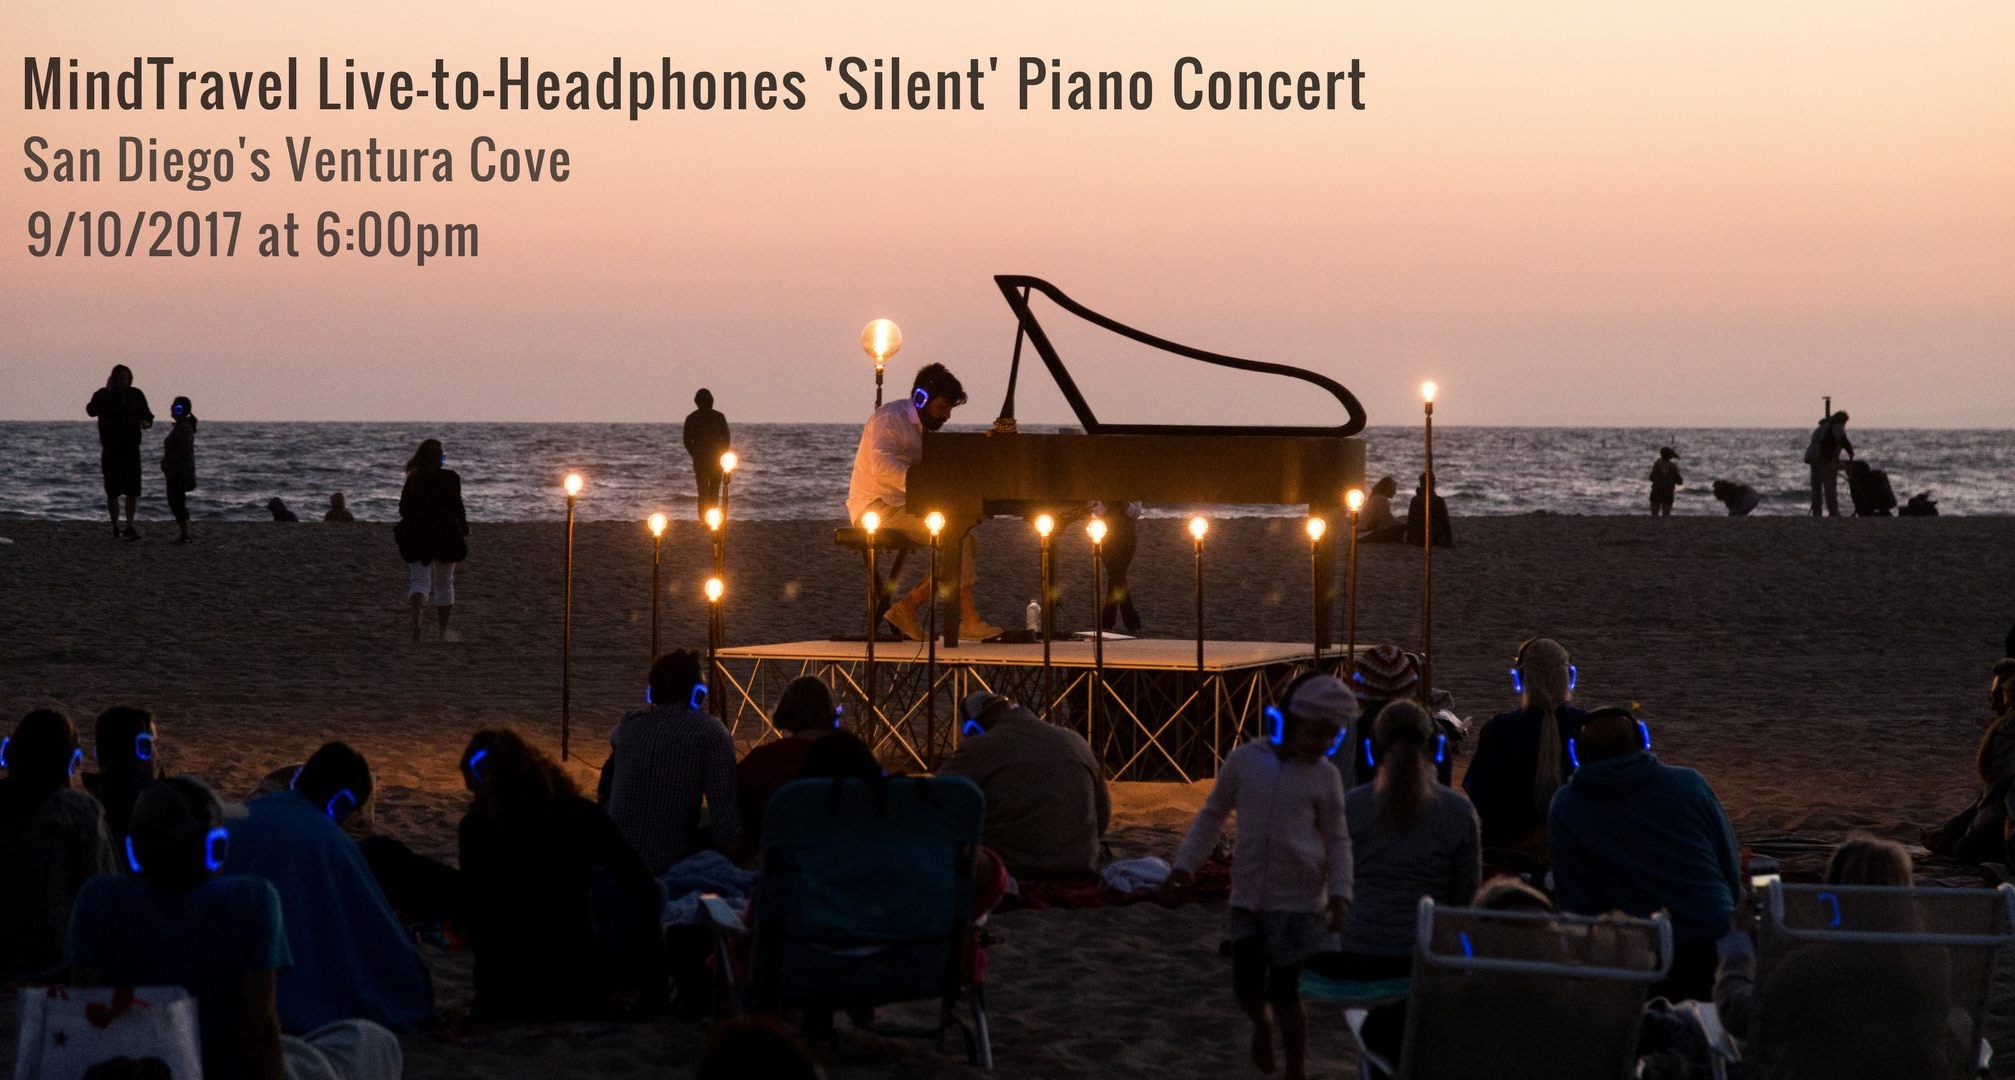 Silent Piano Concert